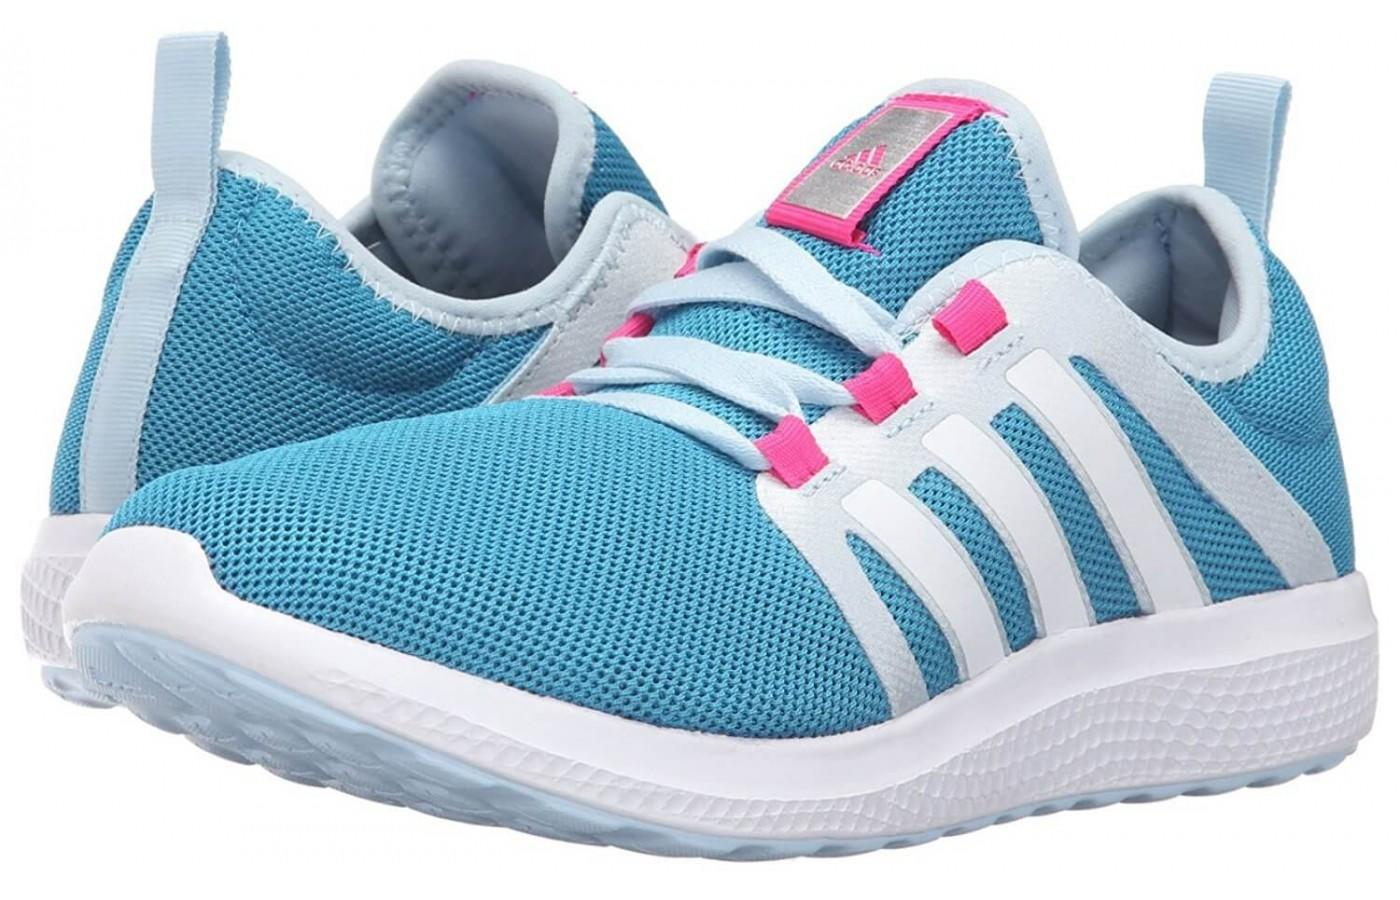 These stylish lightweight trainers are the Adidas Climacool Fresh Bounce